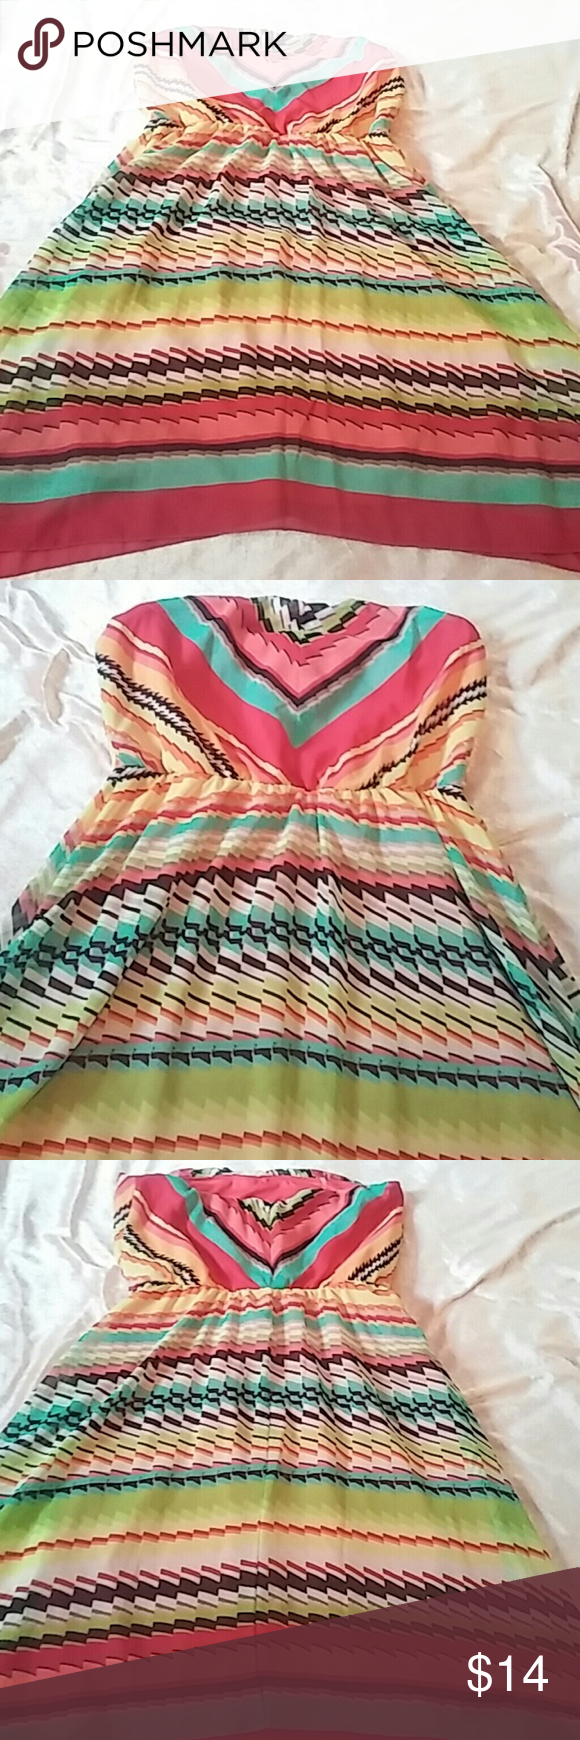 "Nwt- adorable stripe dress- size 7 Jrs Nwt- bright, jagged stripes, strapless dress. Chevron design on chest and top back. Jagged hemline. Elastic around waist. Tag says 7 jr will fit misses small. 27"" long. Ruby Rox Dresses"